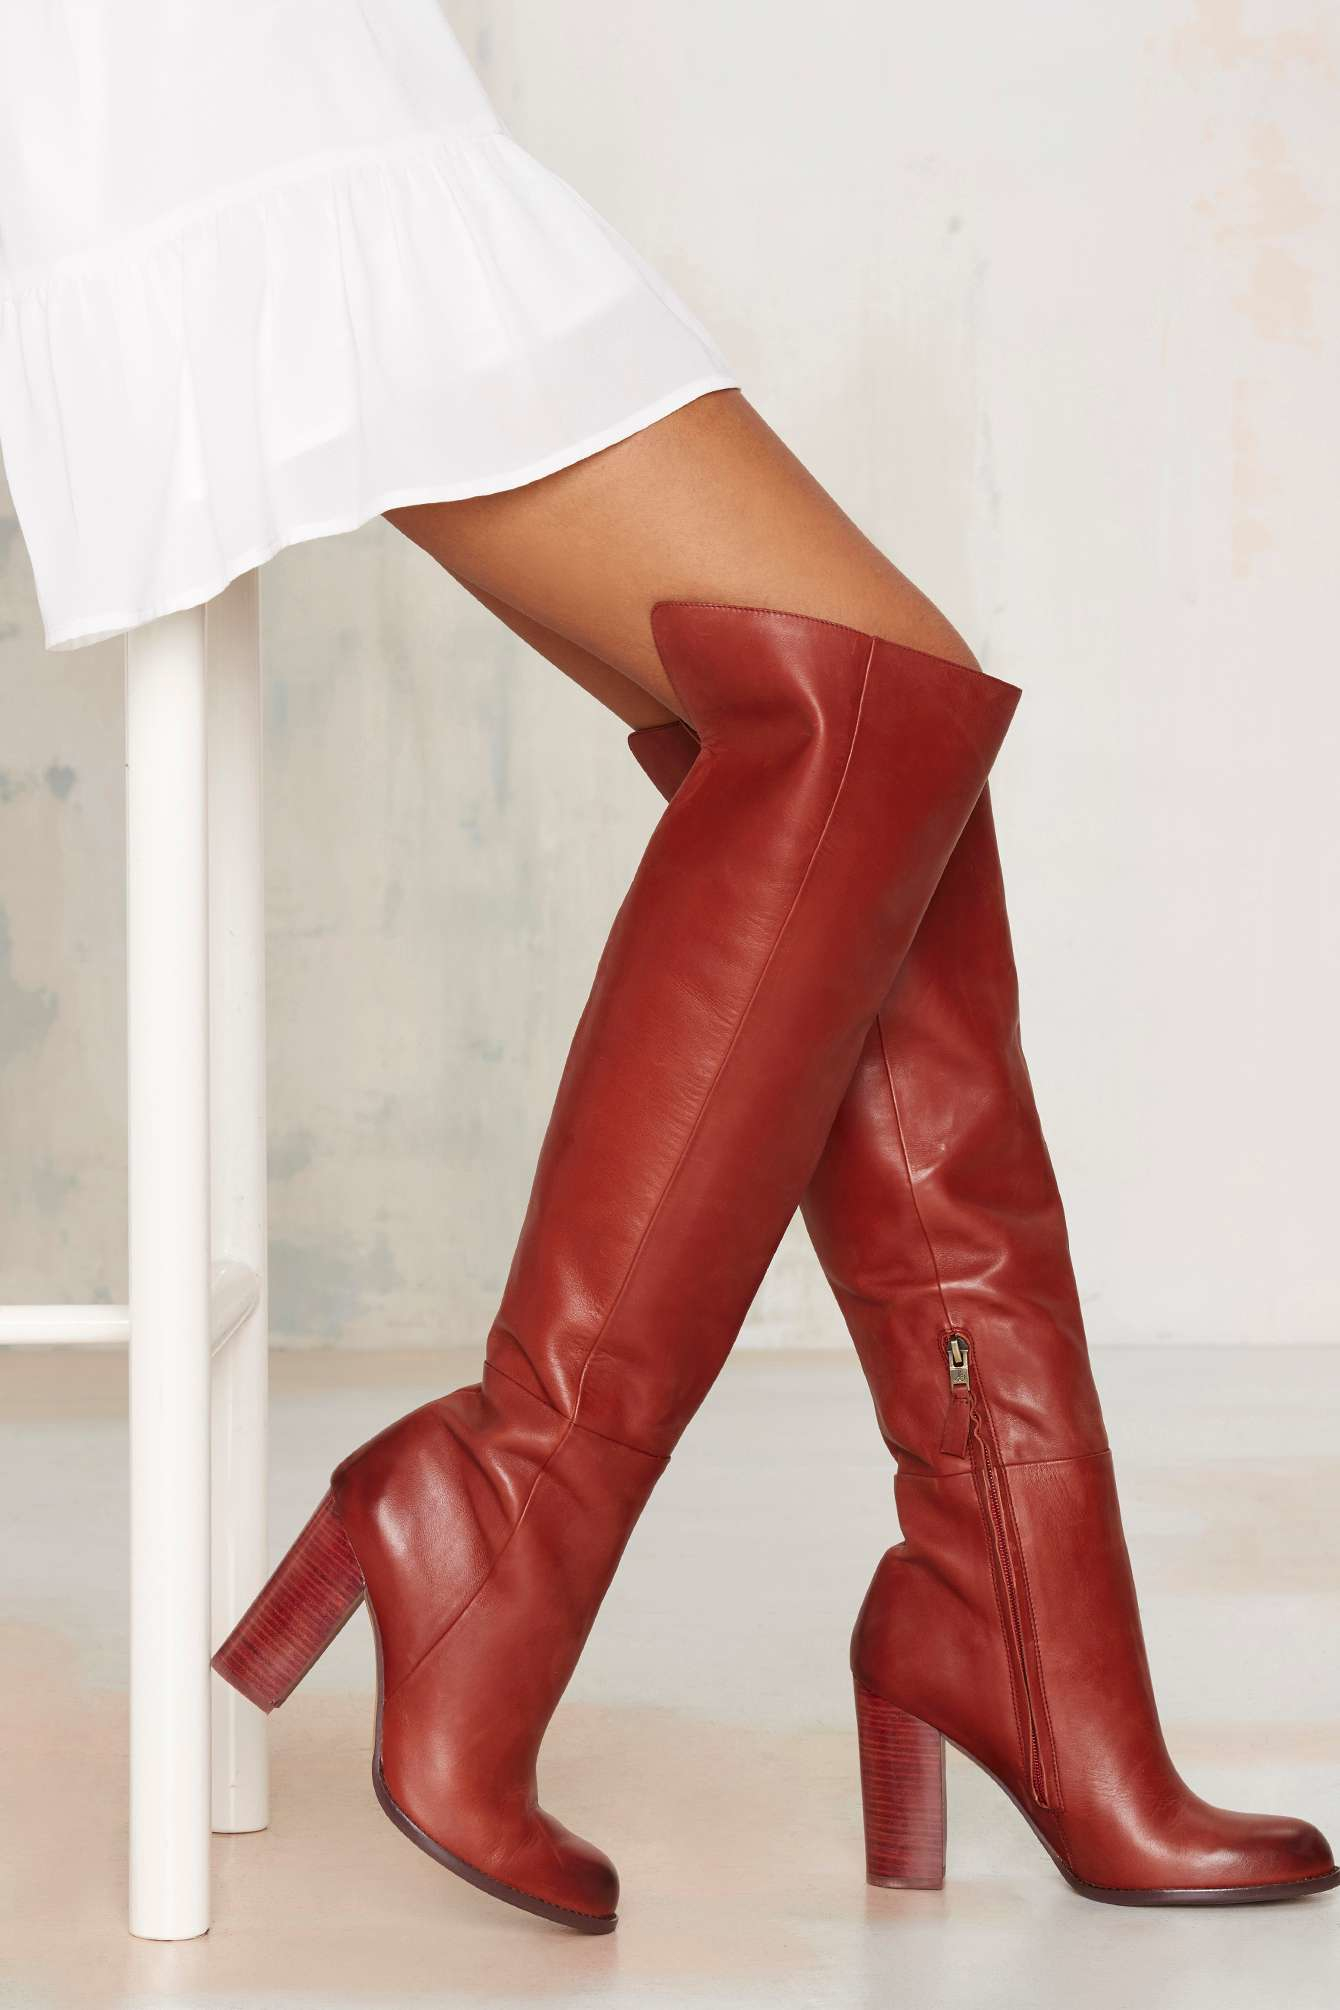 Knee-High Boots Women's Boots: Find the latest styles of Shoes from fefdinterested.gq Your Online Women's Shoes Store! Get 5% in rewards with Club O! Coupon Activated! Bandolino Womens florie Leather Square Toe Knee High Fashion Boots. 1 Review. SALE. Quick View. Sale $